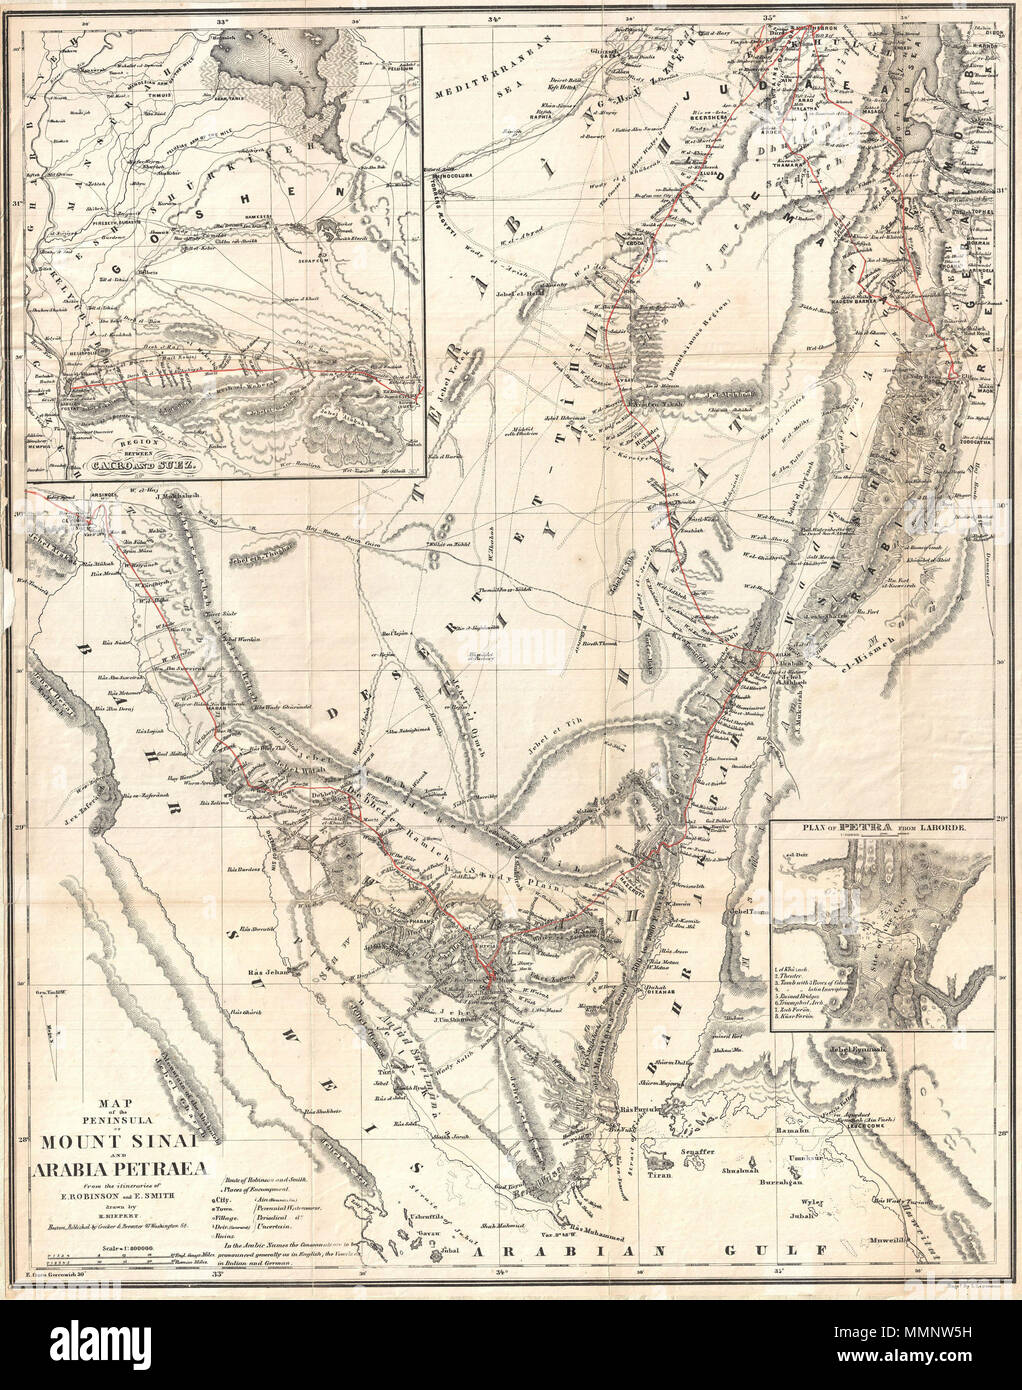 English: An uncommon map of the Sinai Peninsula by the classical